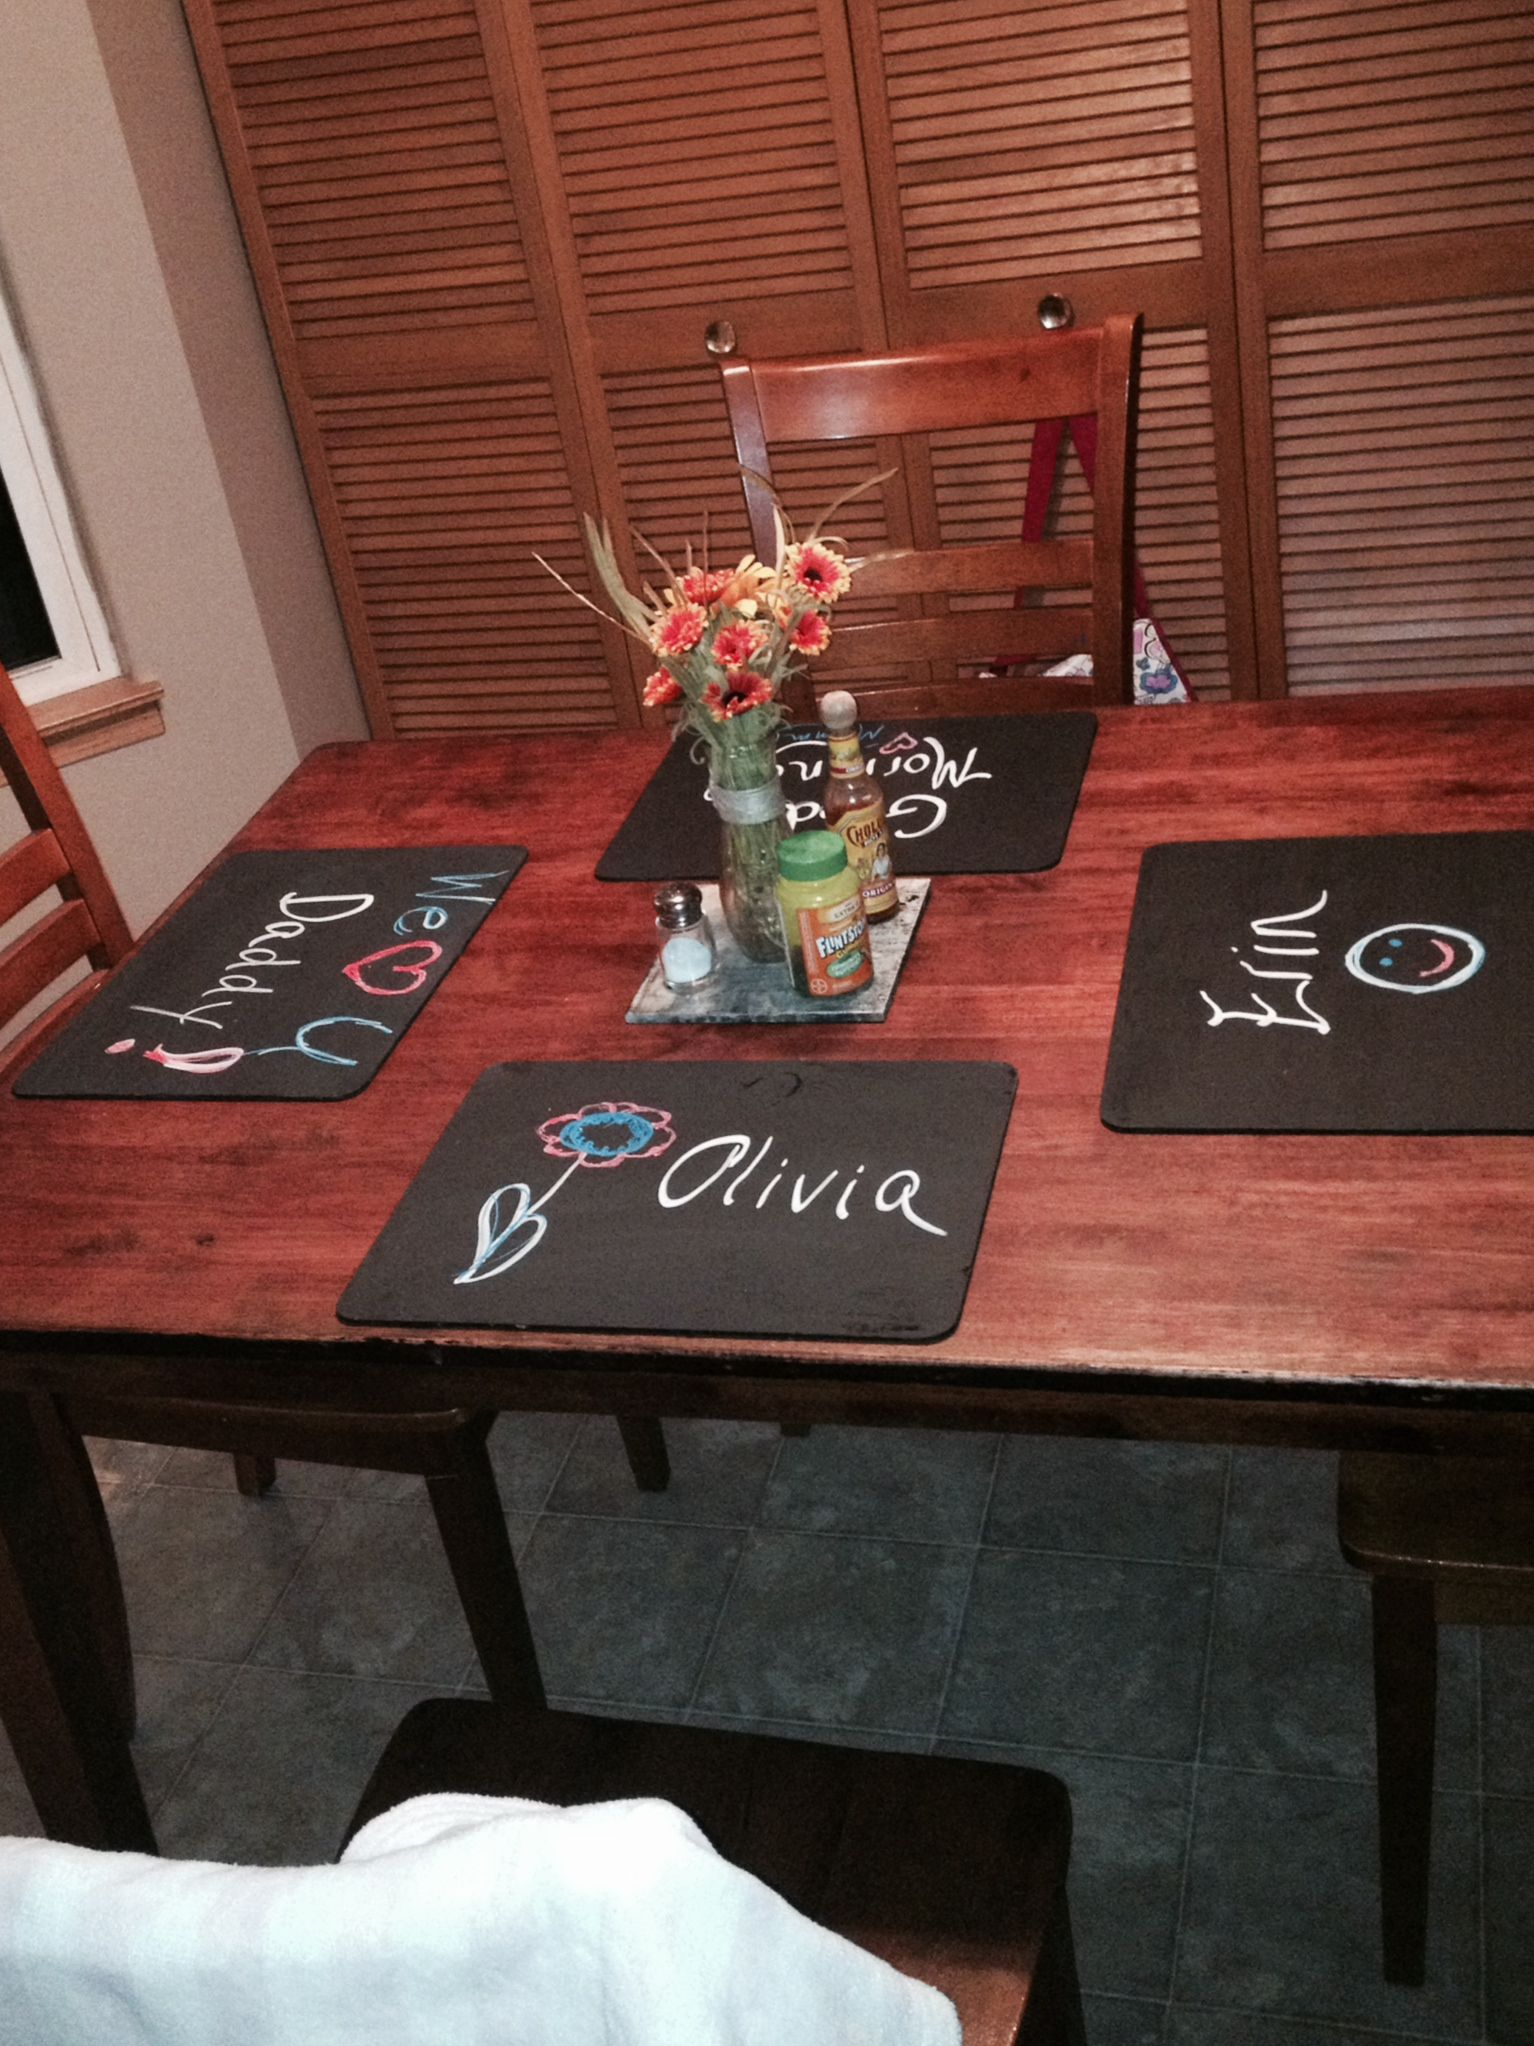 Pin By Lorna Forsyth On My Projects Crafts All Ideas That I Have Taken From Pinterest And Made My Own No Real Instructions Included Coffee Table Pallet Coffee Table Chalkboard Paint